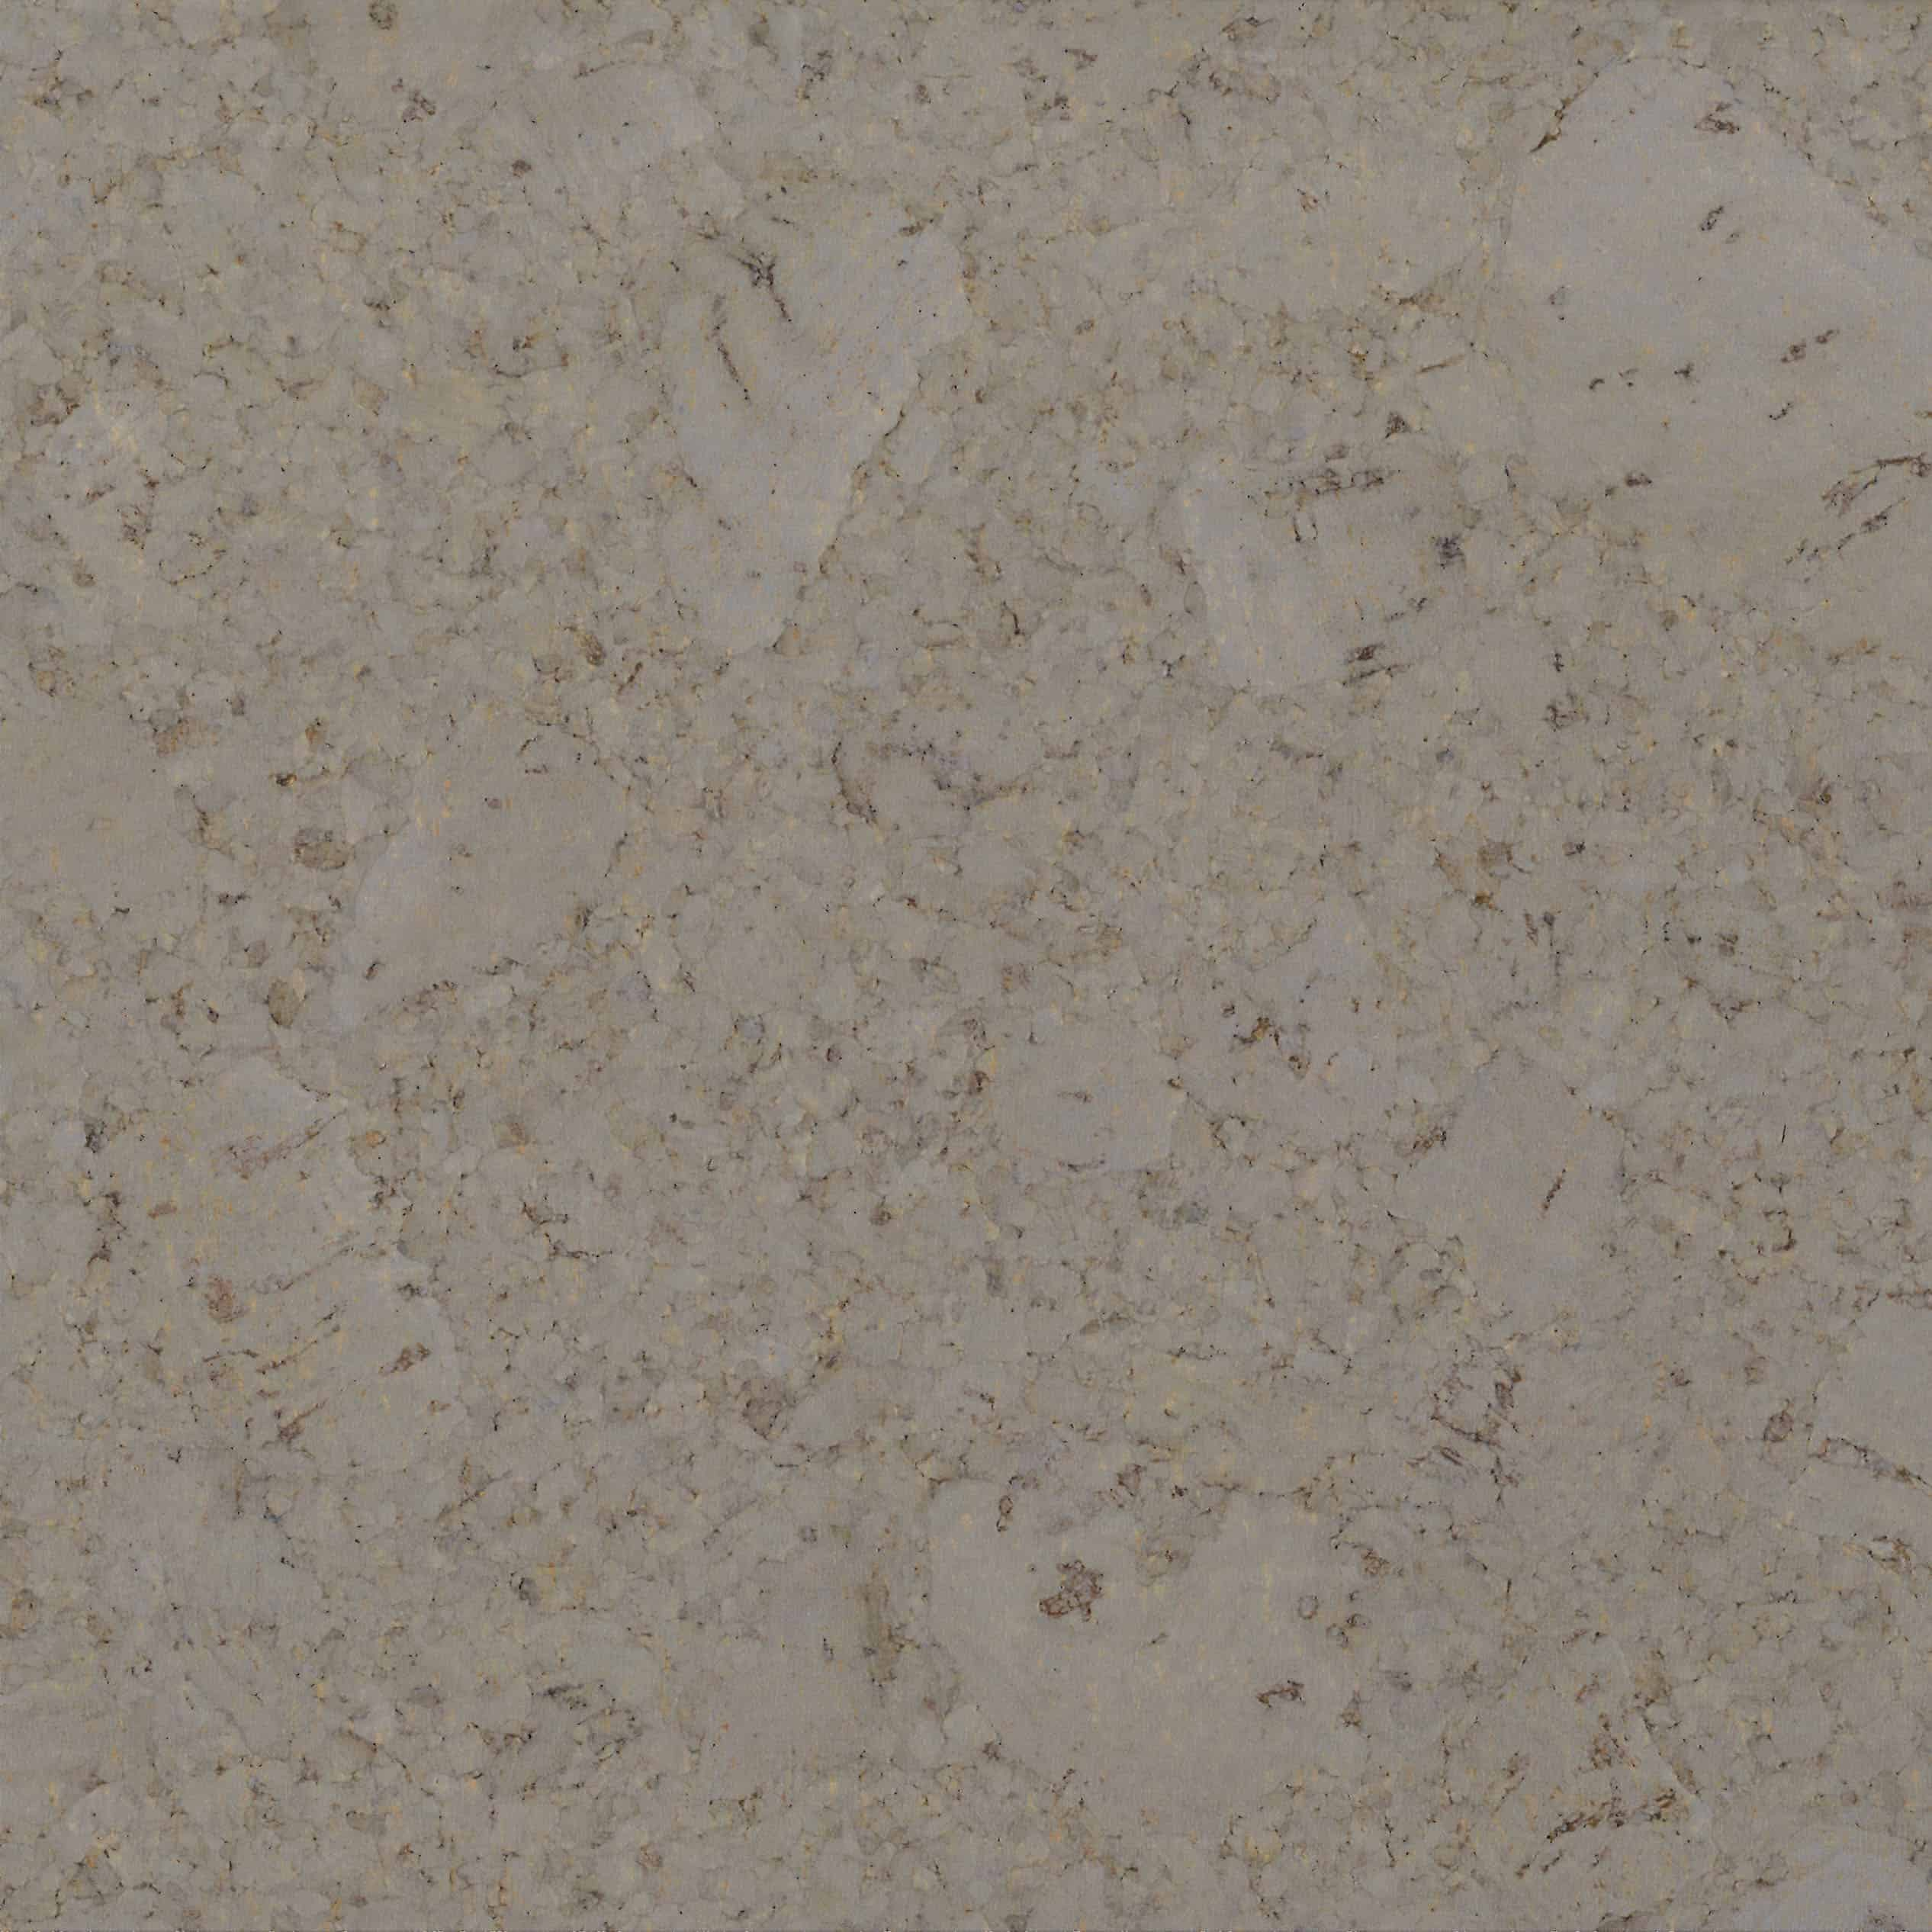 Wicanders seville cork flooring marble pearl sale 399sf wicanders seville cork flooring marble pearl sale 399sf dailygadgetfo Choice Image